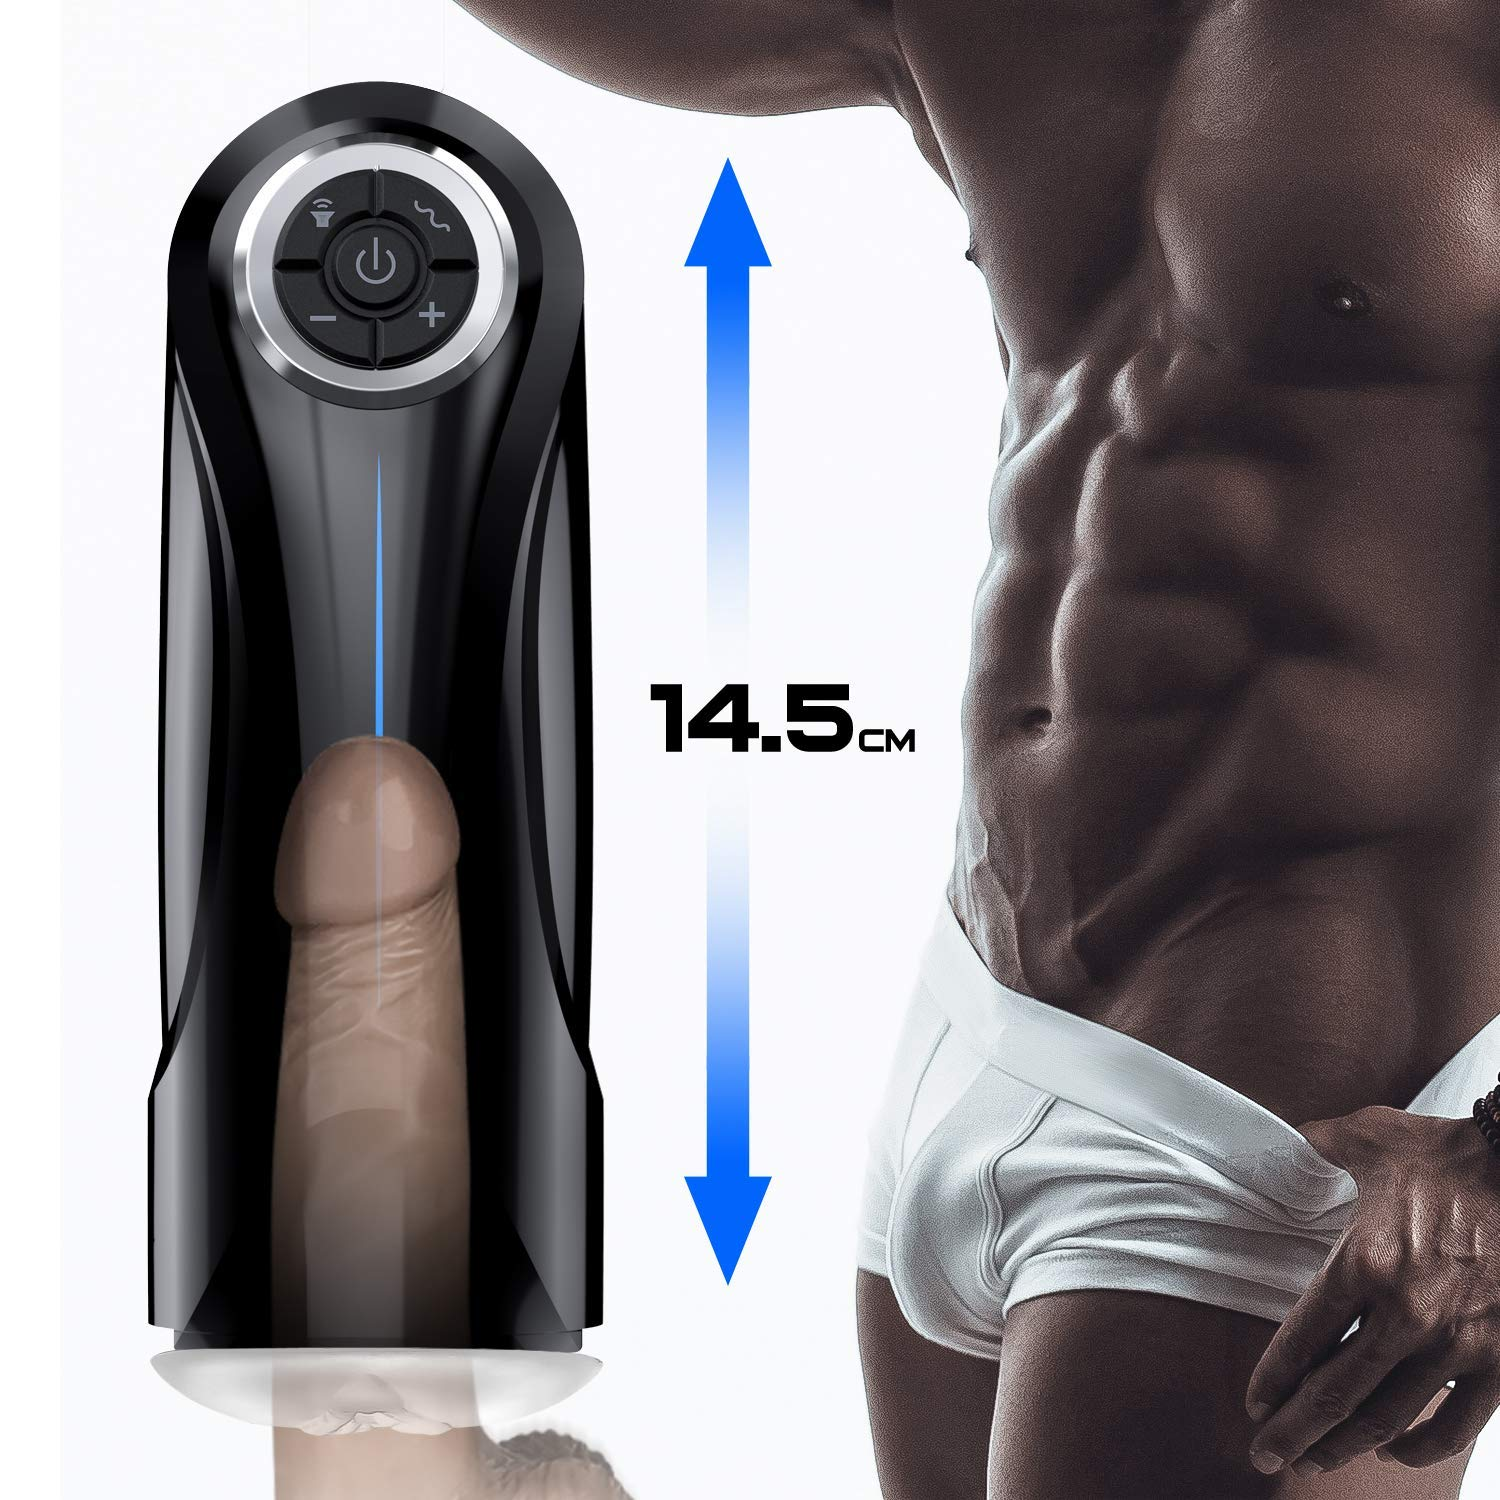 Male Masturbator Cup Electric Adult Sex Toys for Men with 5 Powerful Thrusting Modes and 3D Realistic Vagina Pussy Stroker Masturbation Male Vibrator, 6 Speeds Control 3 Female Sexy Moans by Feelingirl